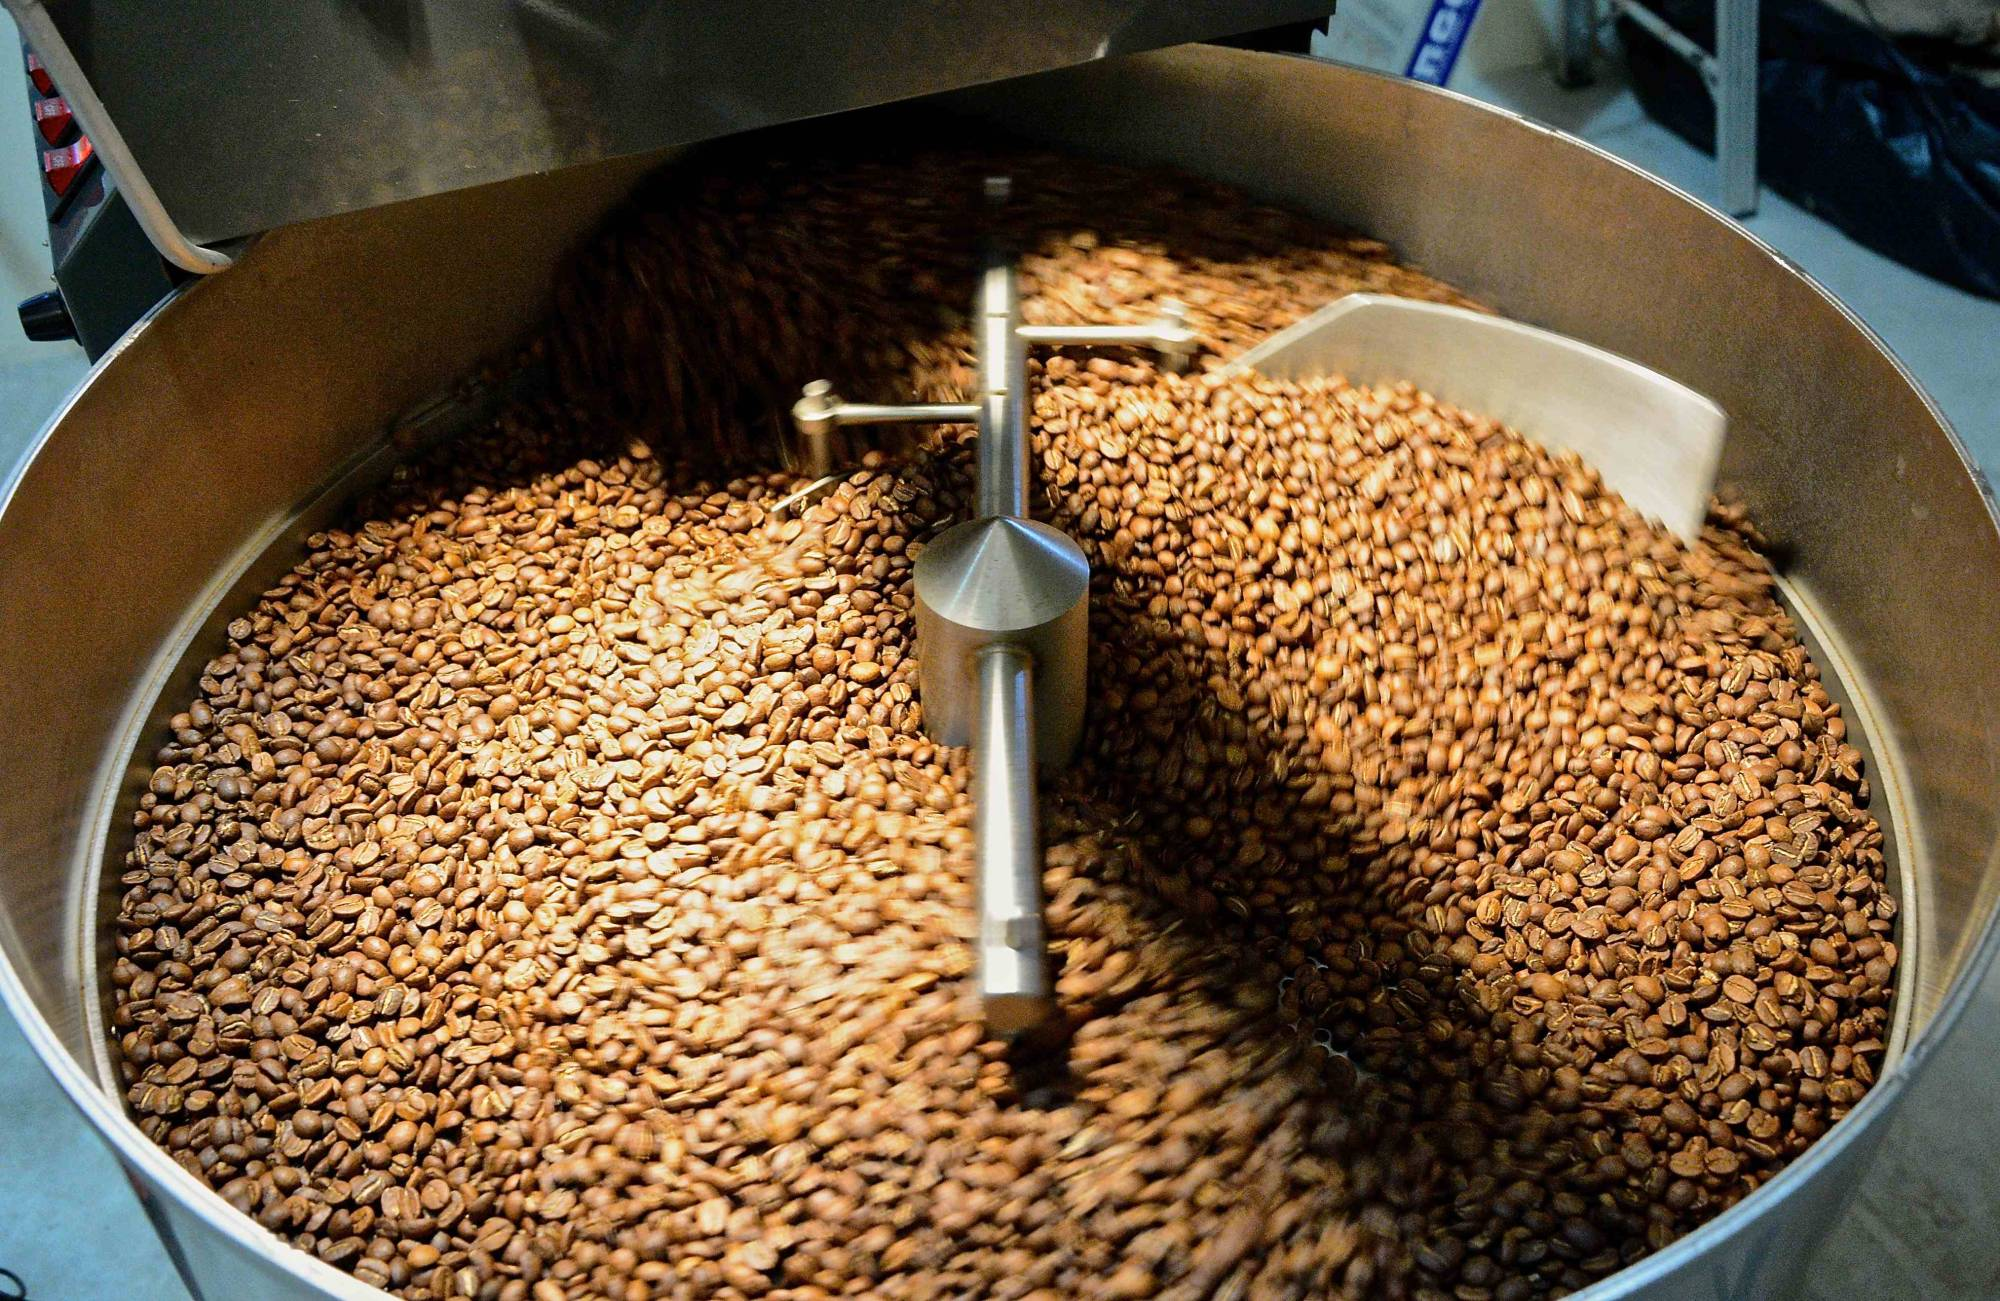 Roasting beans for the perfect cup of coffee